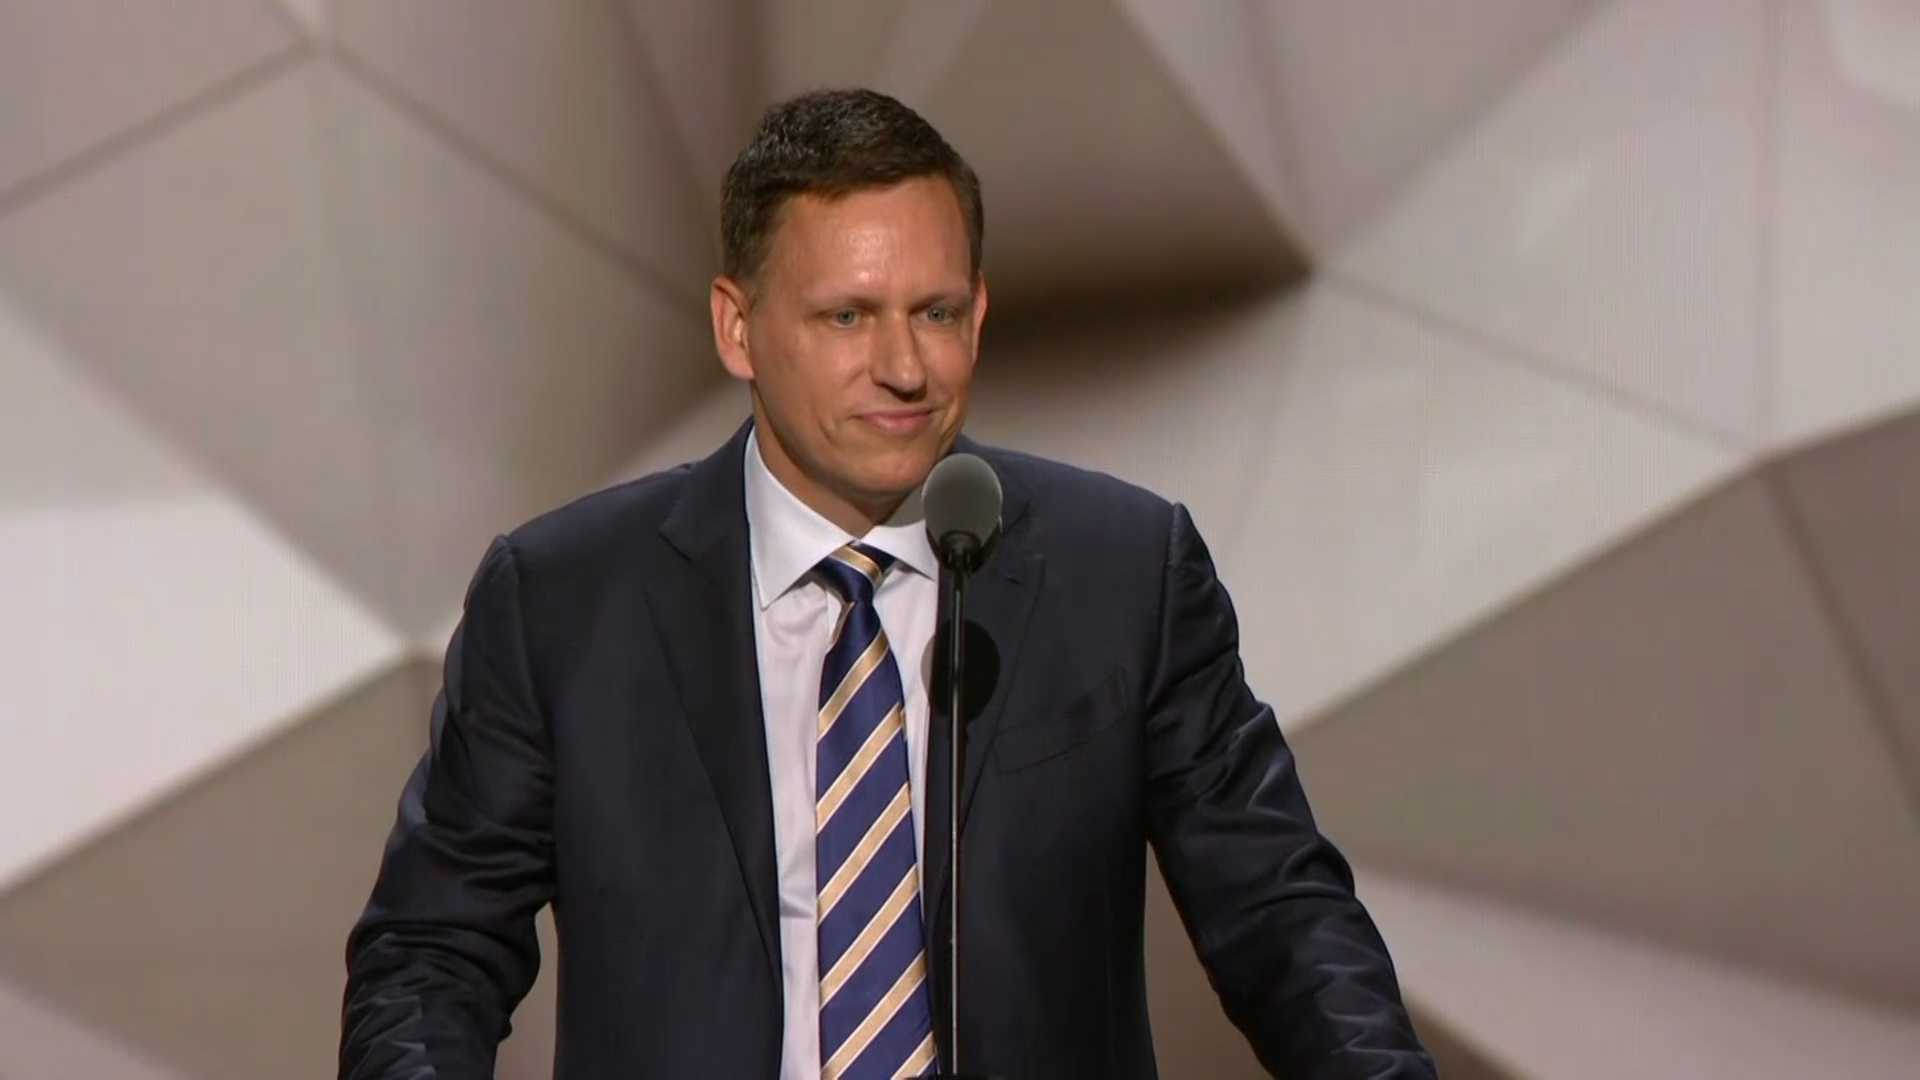 Peter Thiel speaks at the Republican National Convention on Thursday, July 21, 2016.